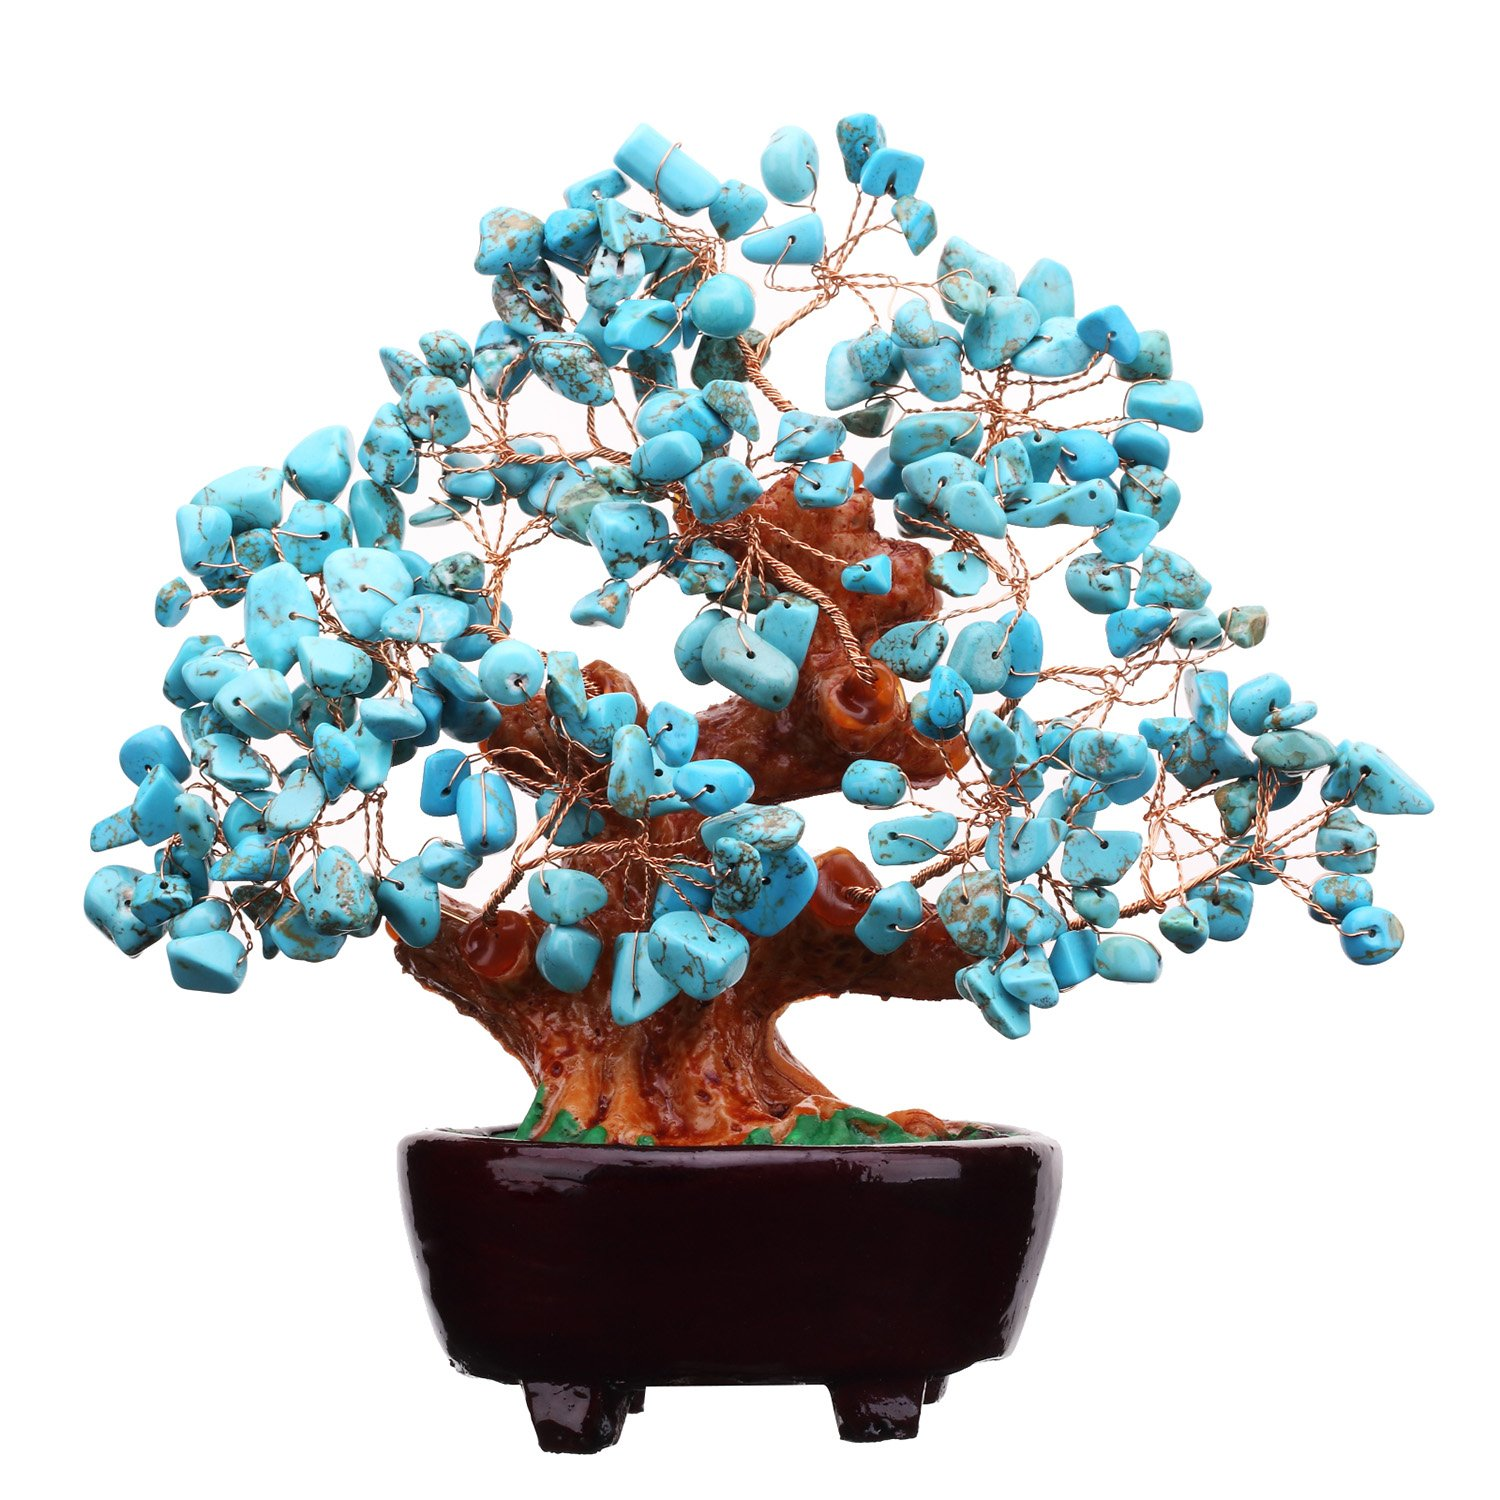 7 Inch Natural Turquoise Gem Stone Money Tree Feng Shui Crystal Quartz for Business Office Home Wealth and Good Luck PA P2002